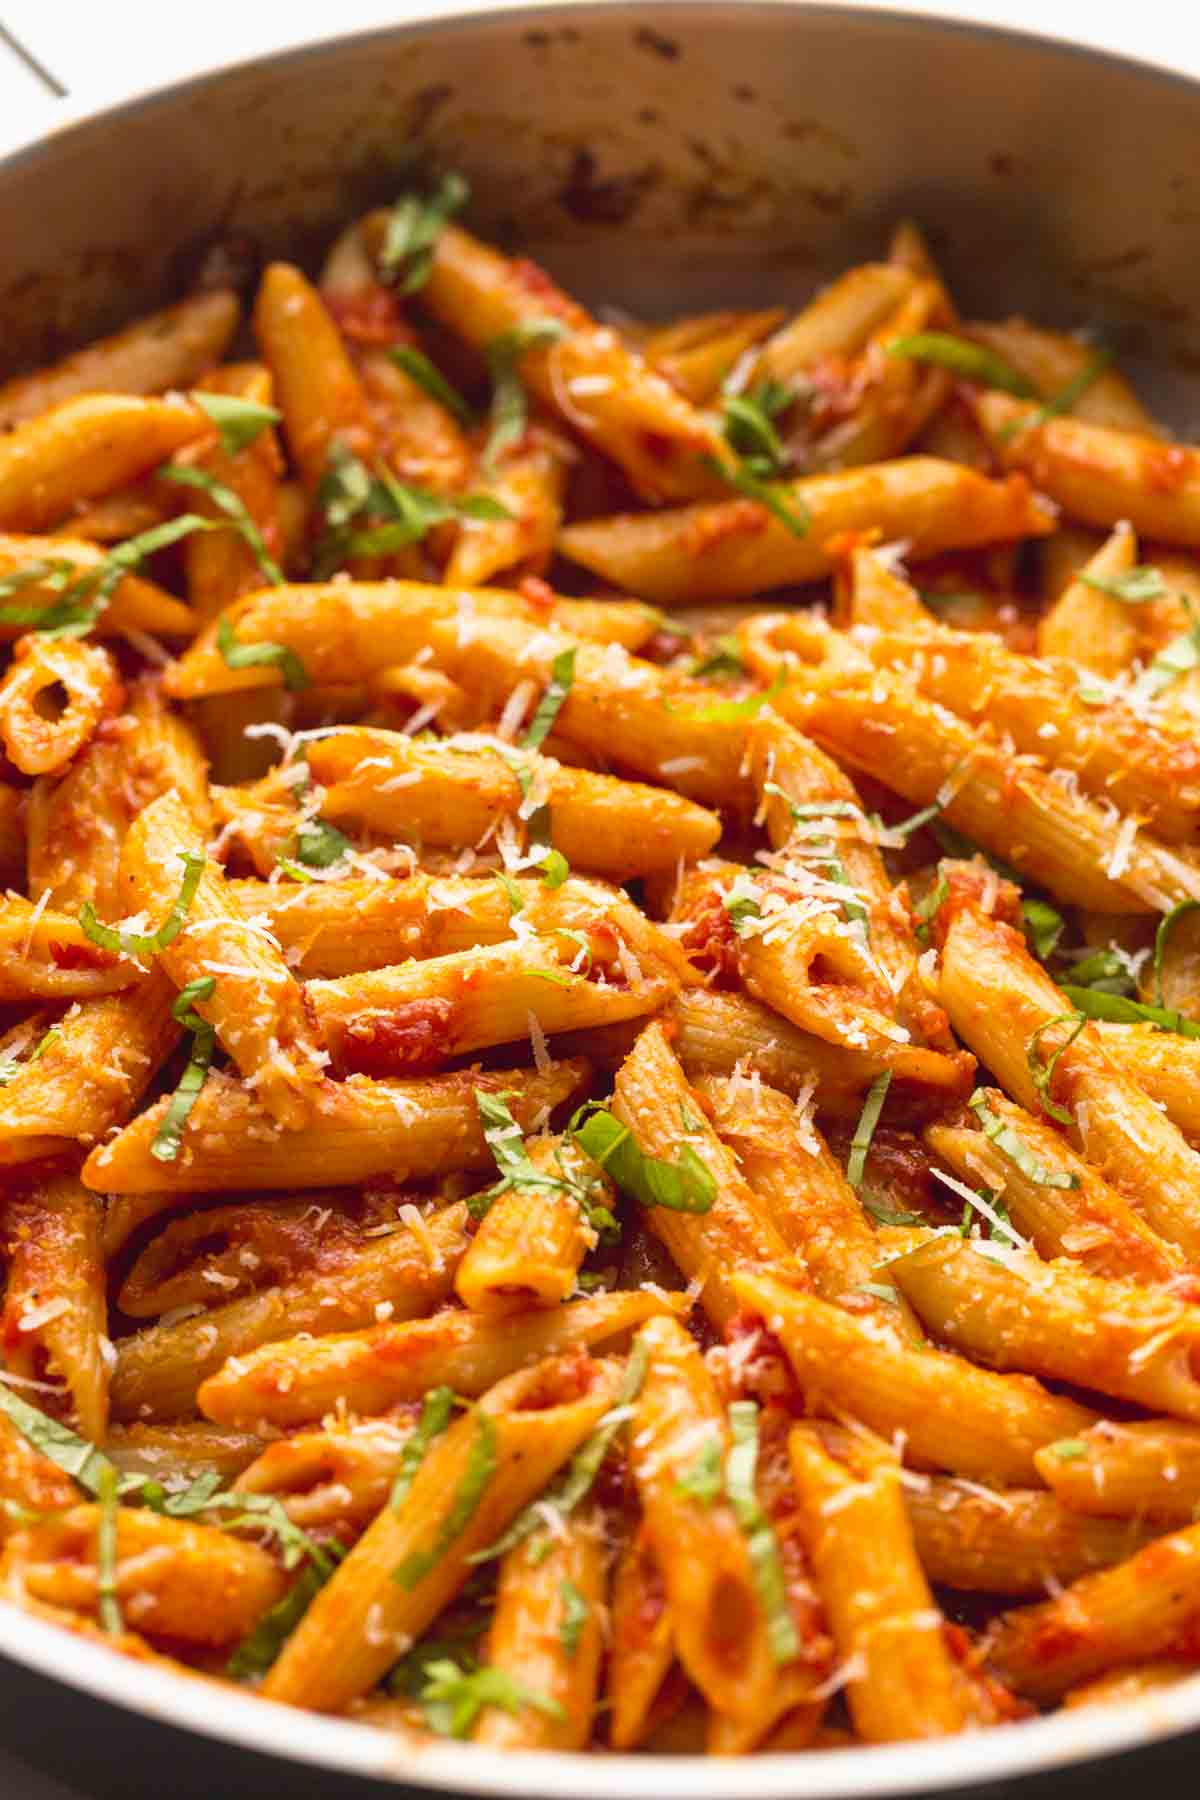 Close up of the pasta in a pan, garnished with parmesan and basil